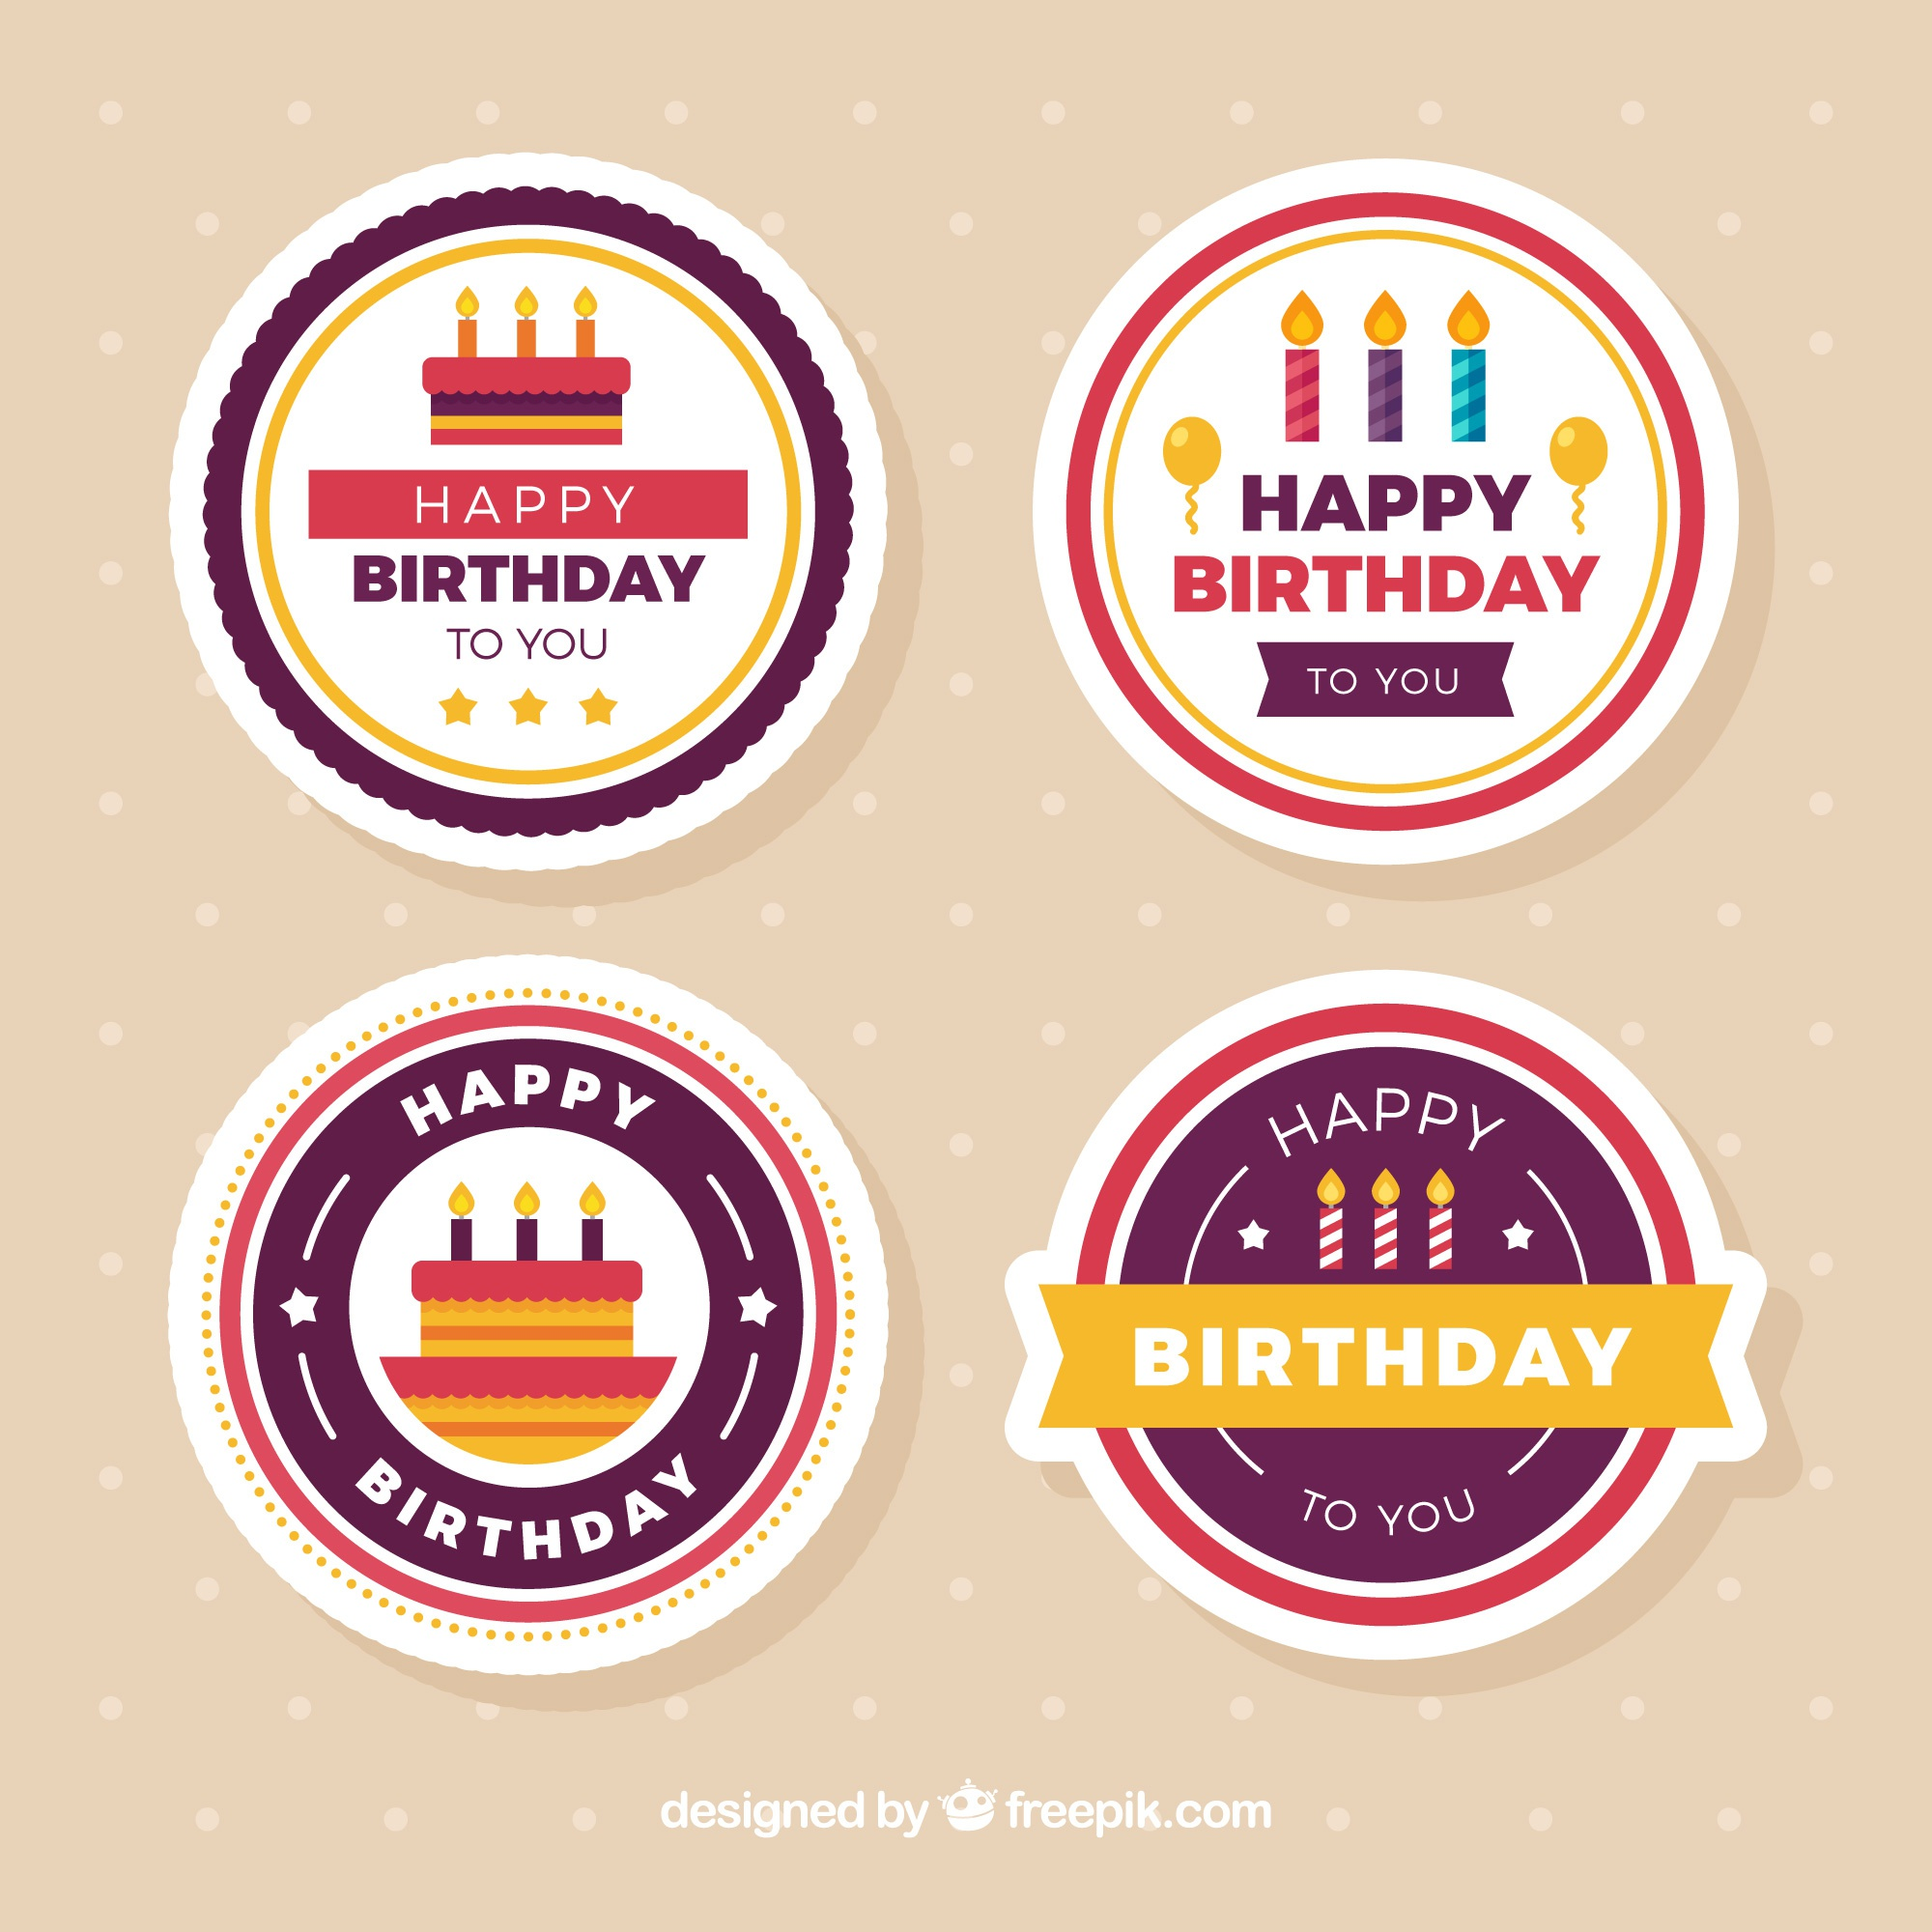 Several round birthday stickers in flat design